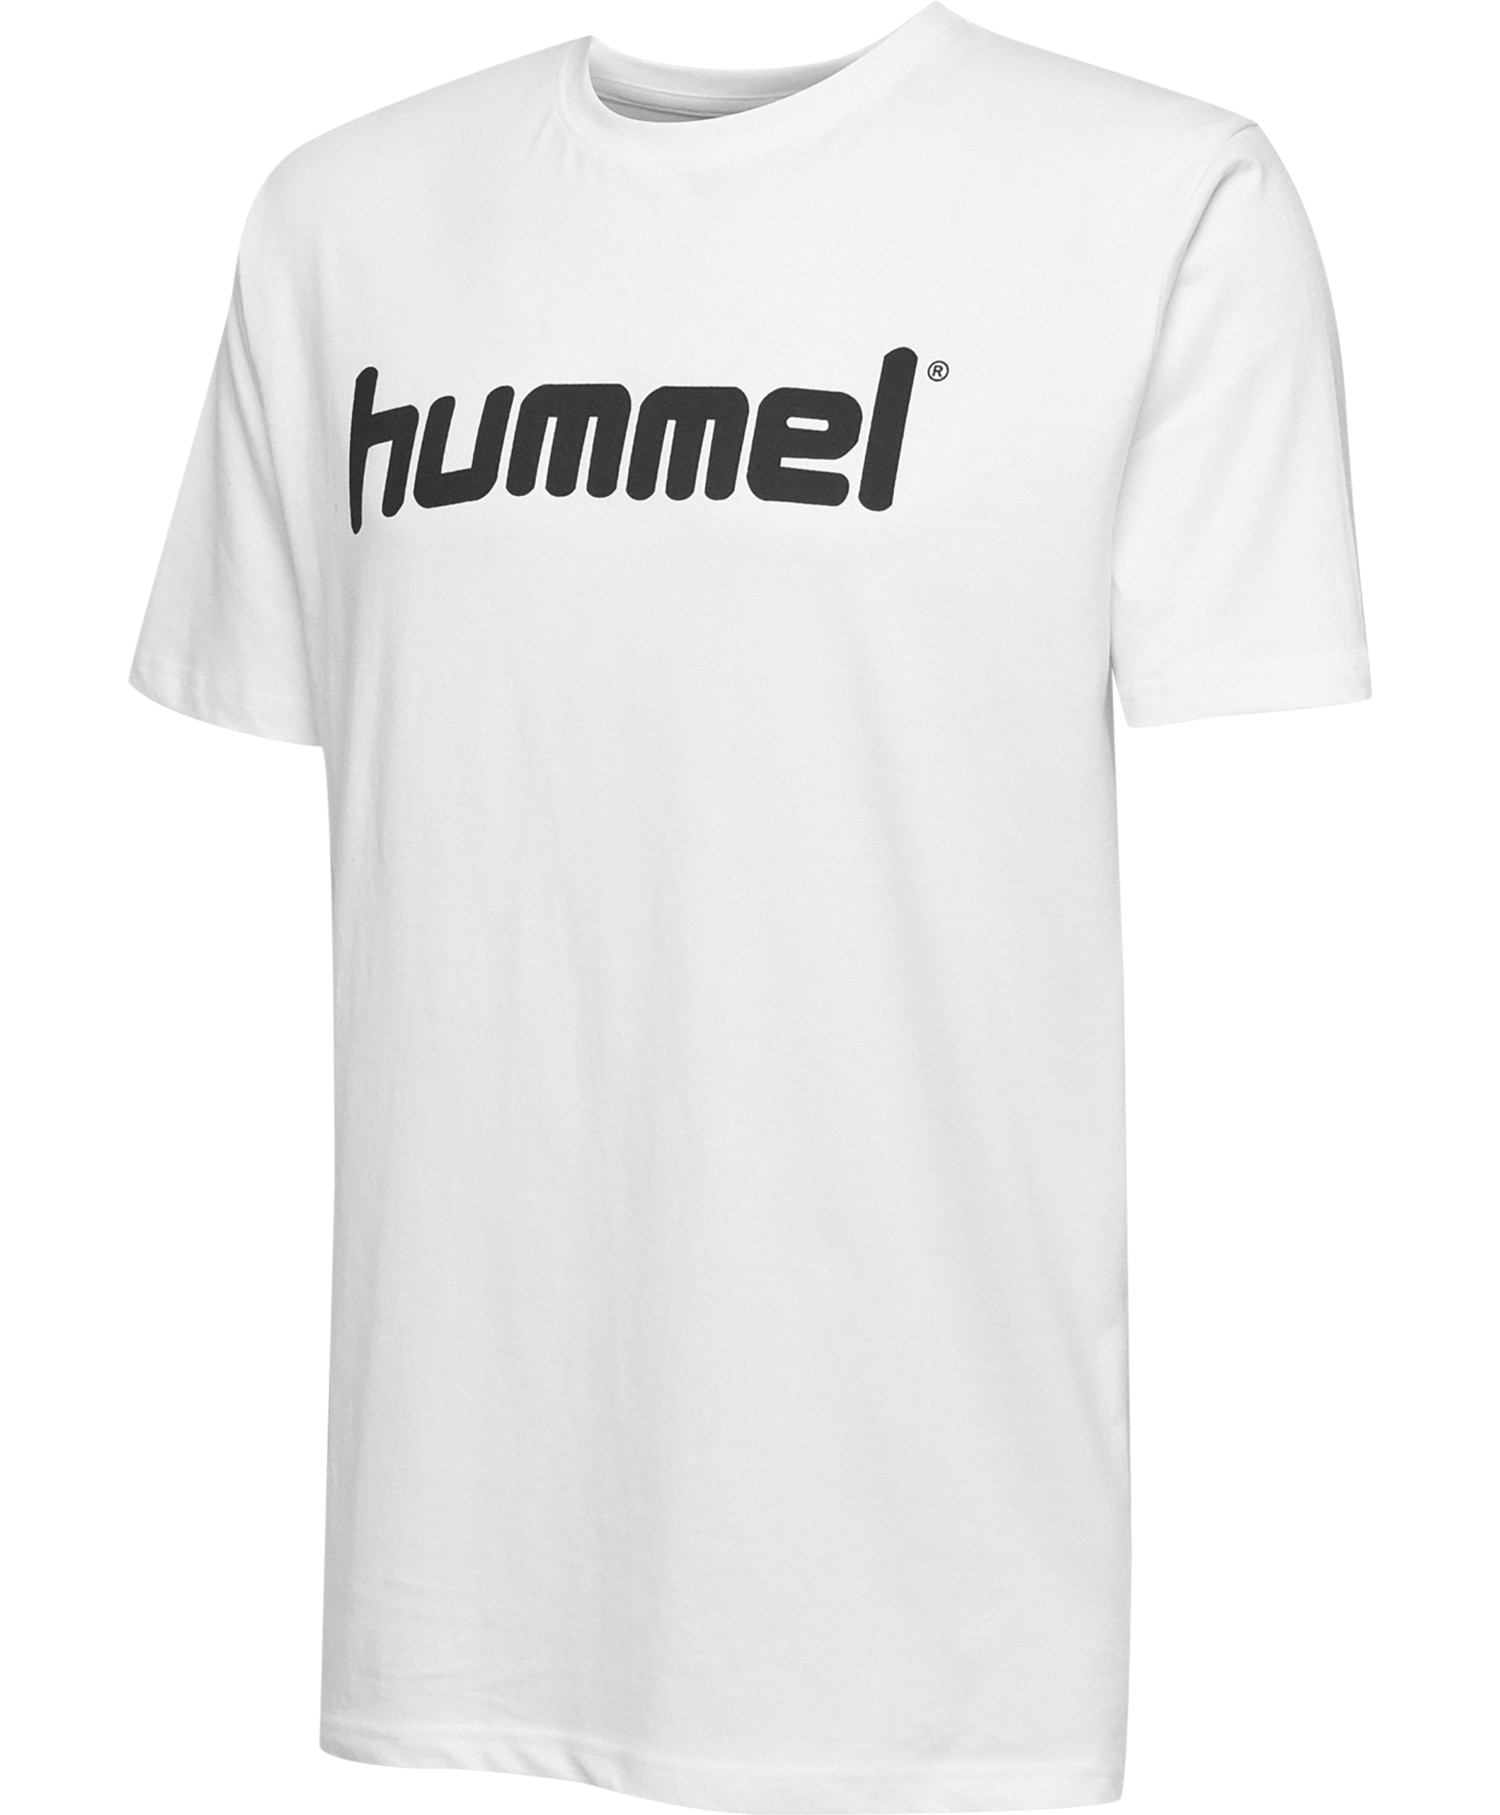 Hummel cotton logo tee